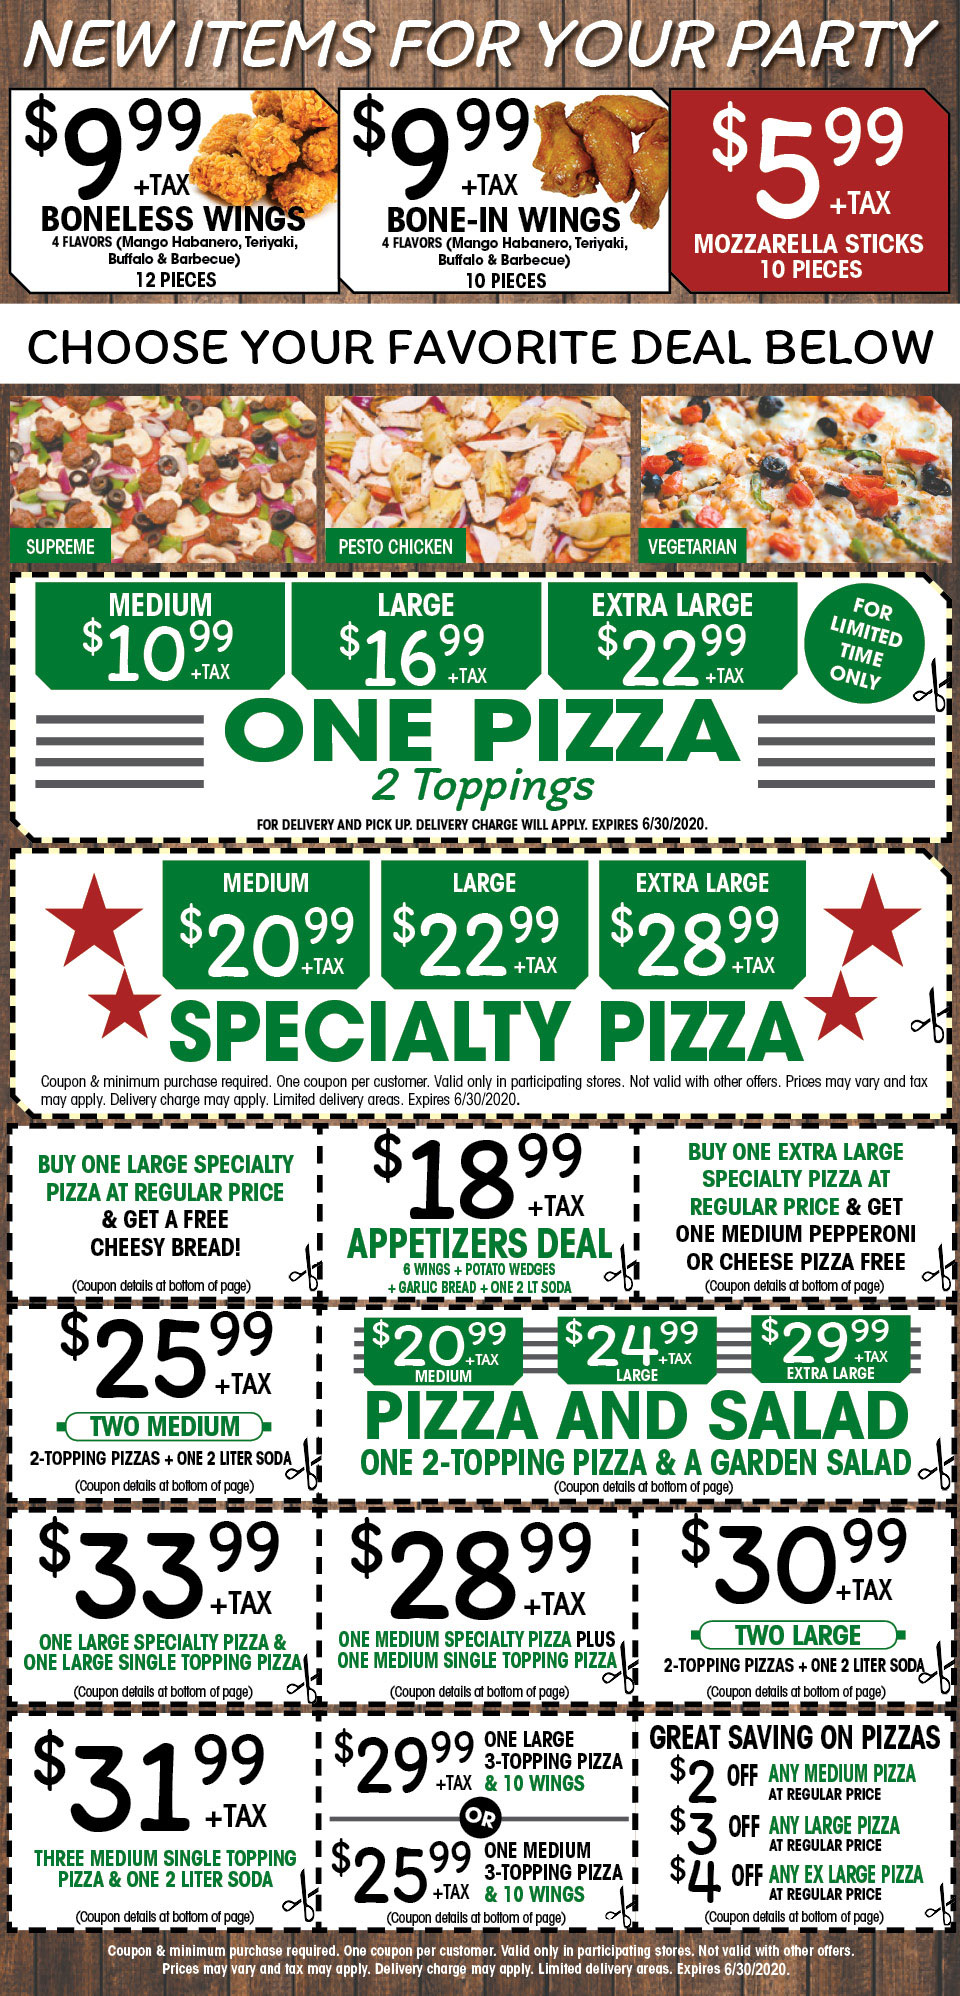 Via MIa Pizza on Camden Ave, San Jose, coupons